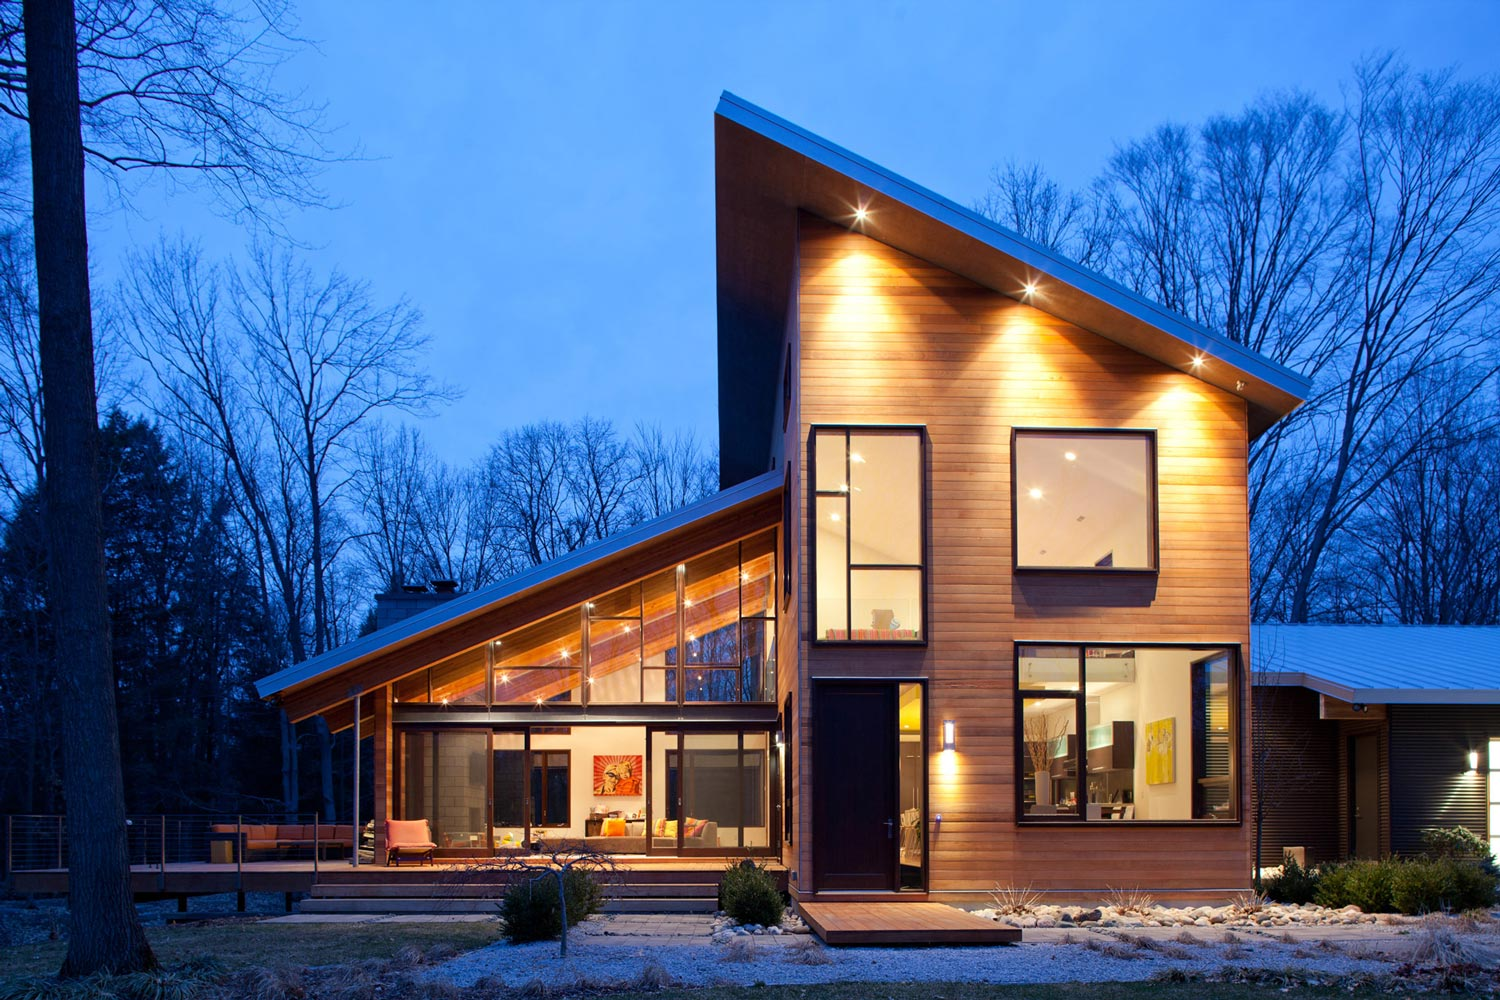 Lucid Architecture's Pigeon Creek residence has a featured modern design.